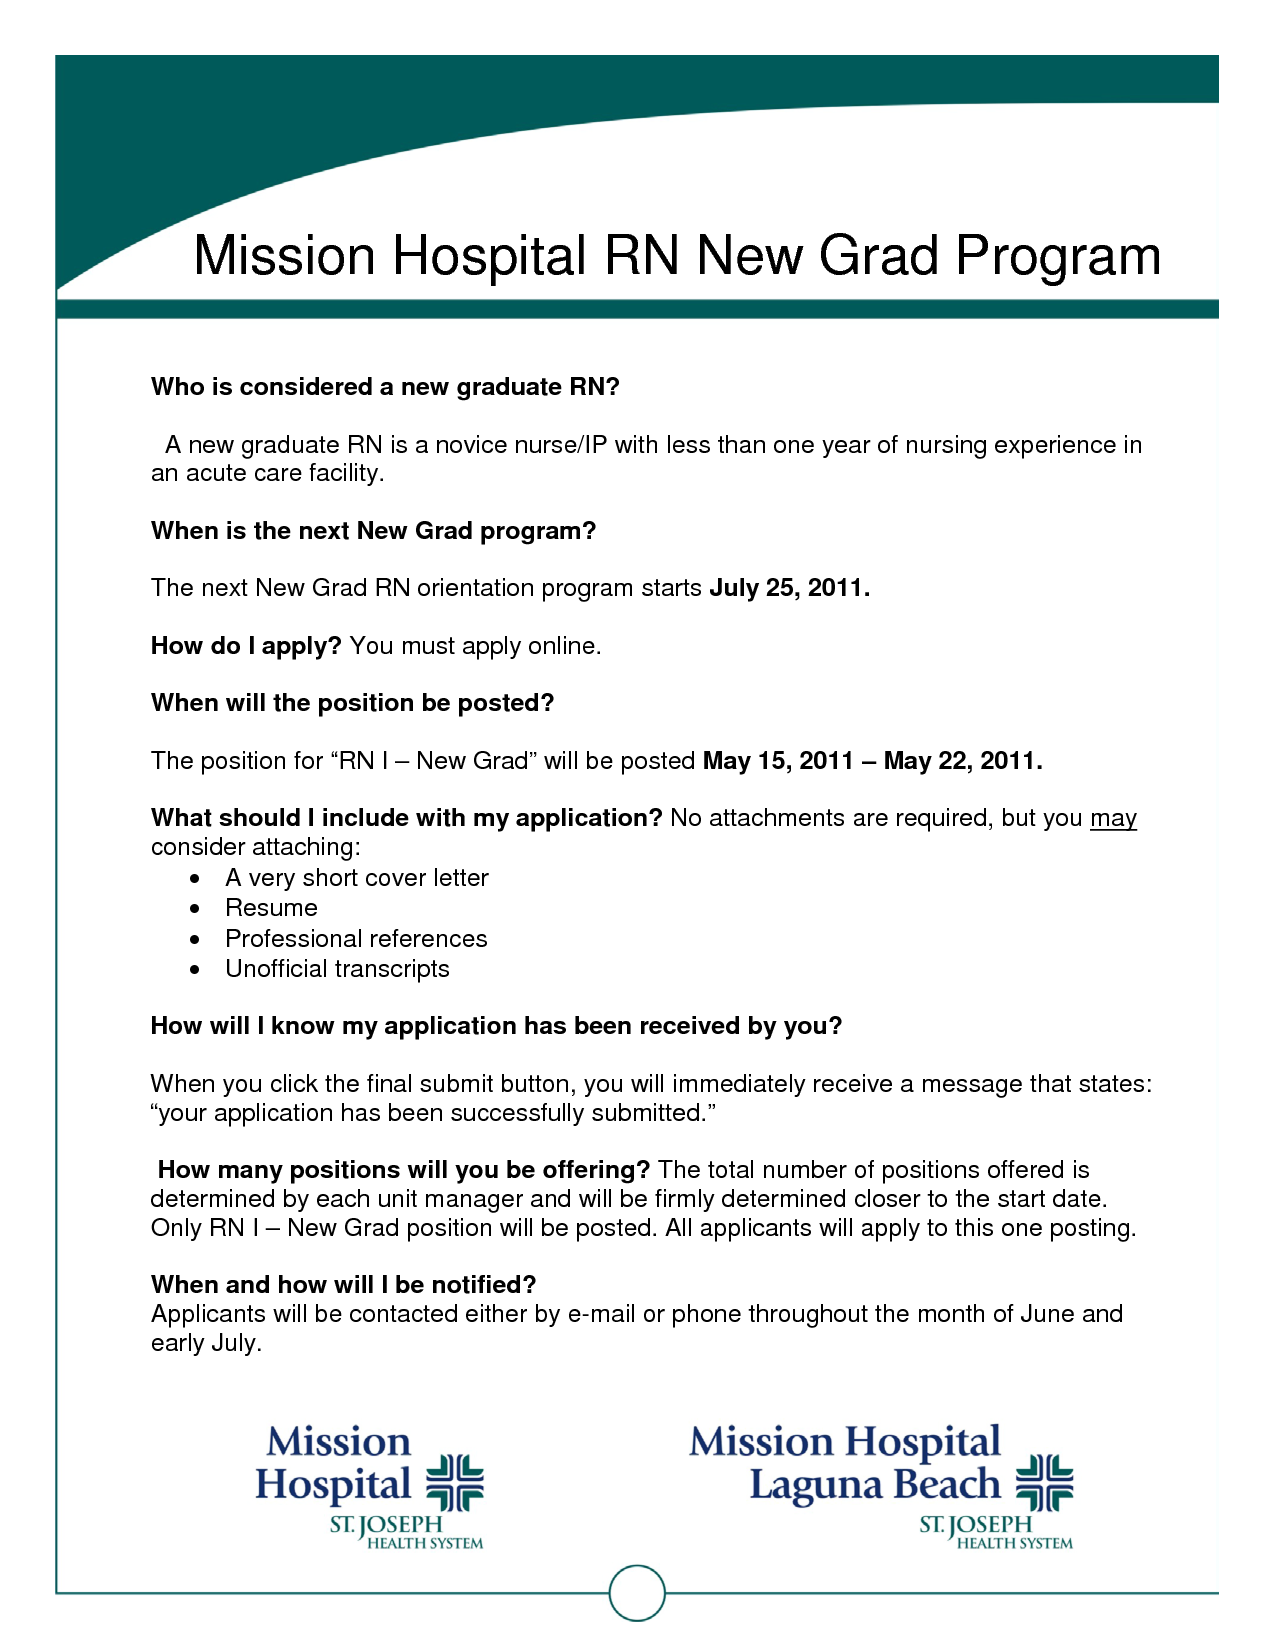 examples nurse resumes resume profile examples nurse resume examples nurse resumes professional resume examples nursing quotes quotesgram professional resume examples nursing quotes